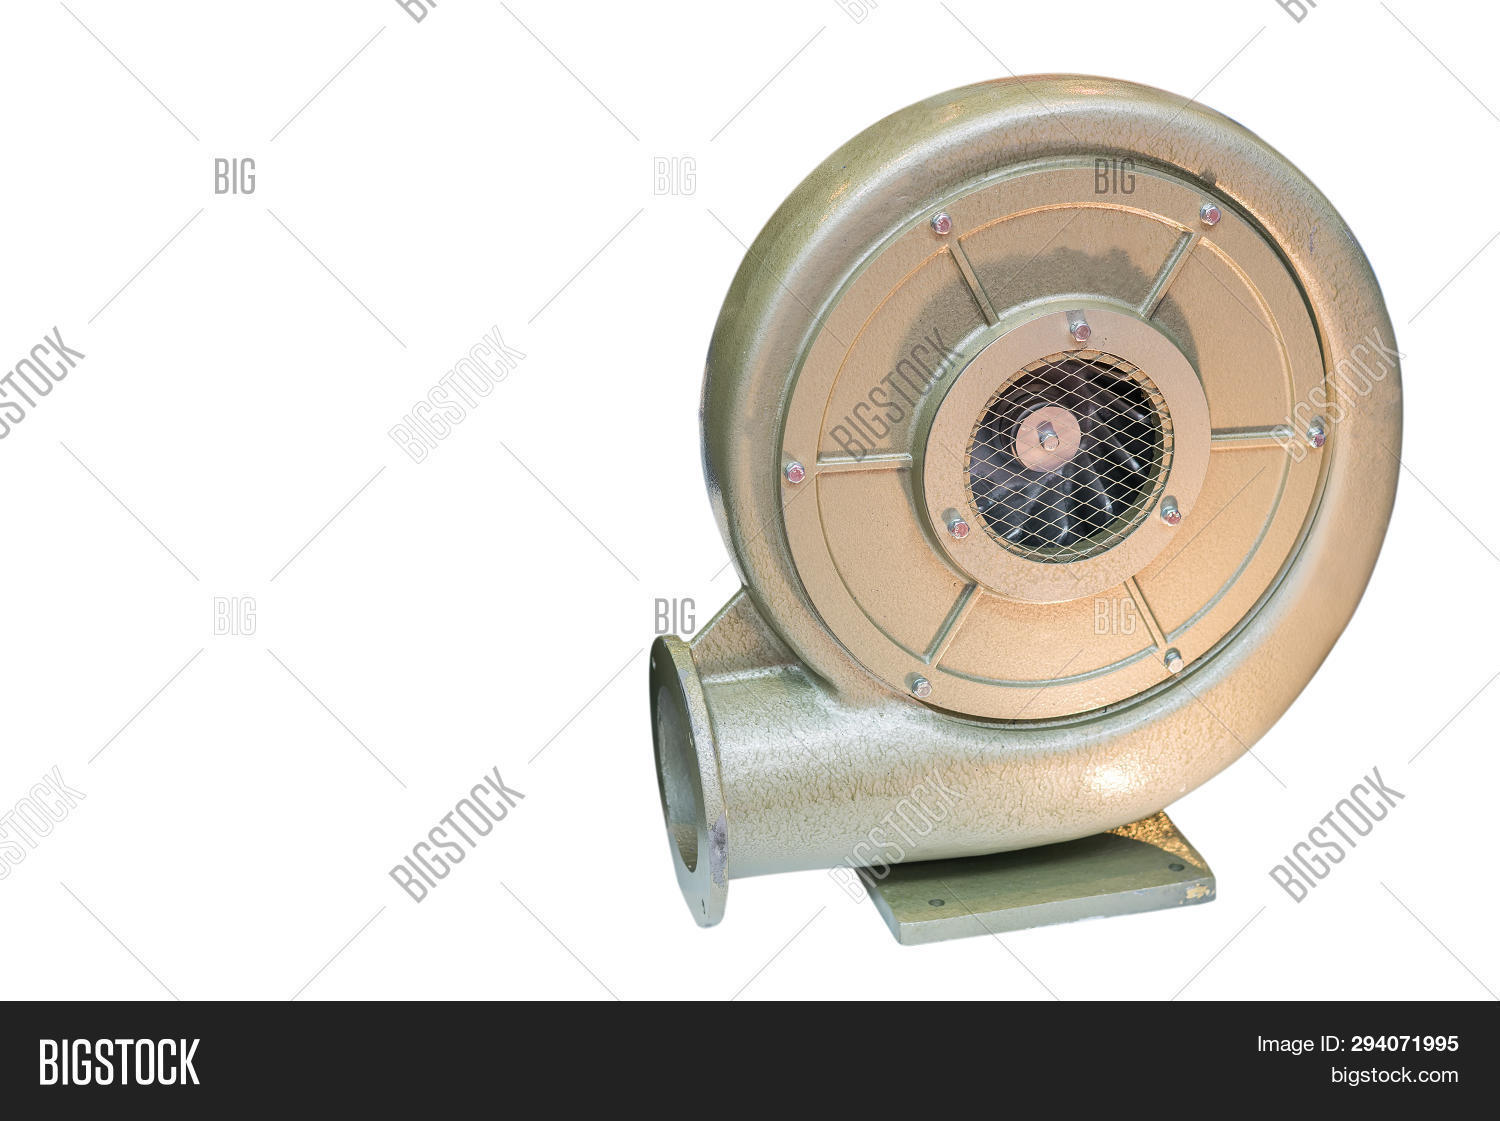 Large Heavy Industrial Image & Photo (Free Trial) | Bigstock